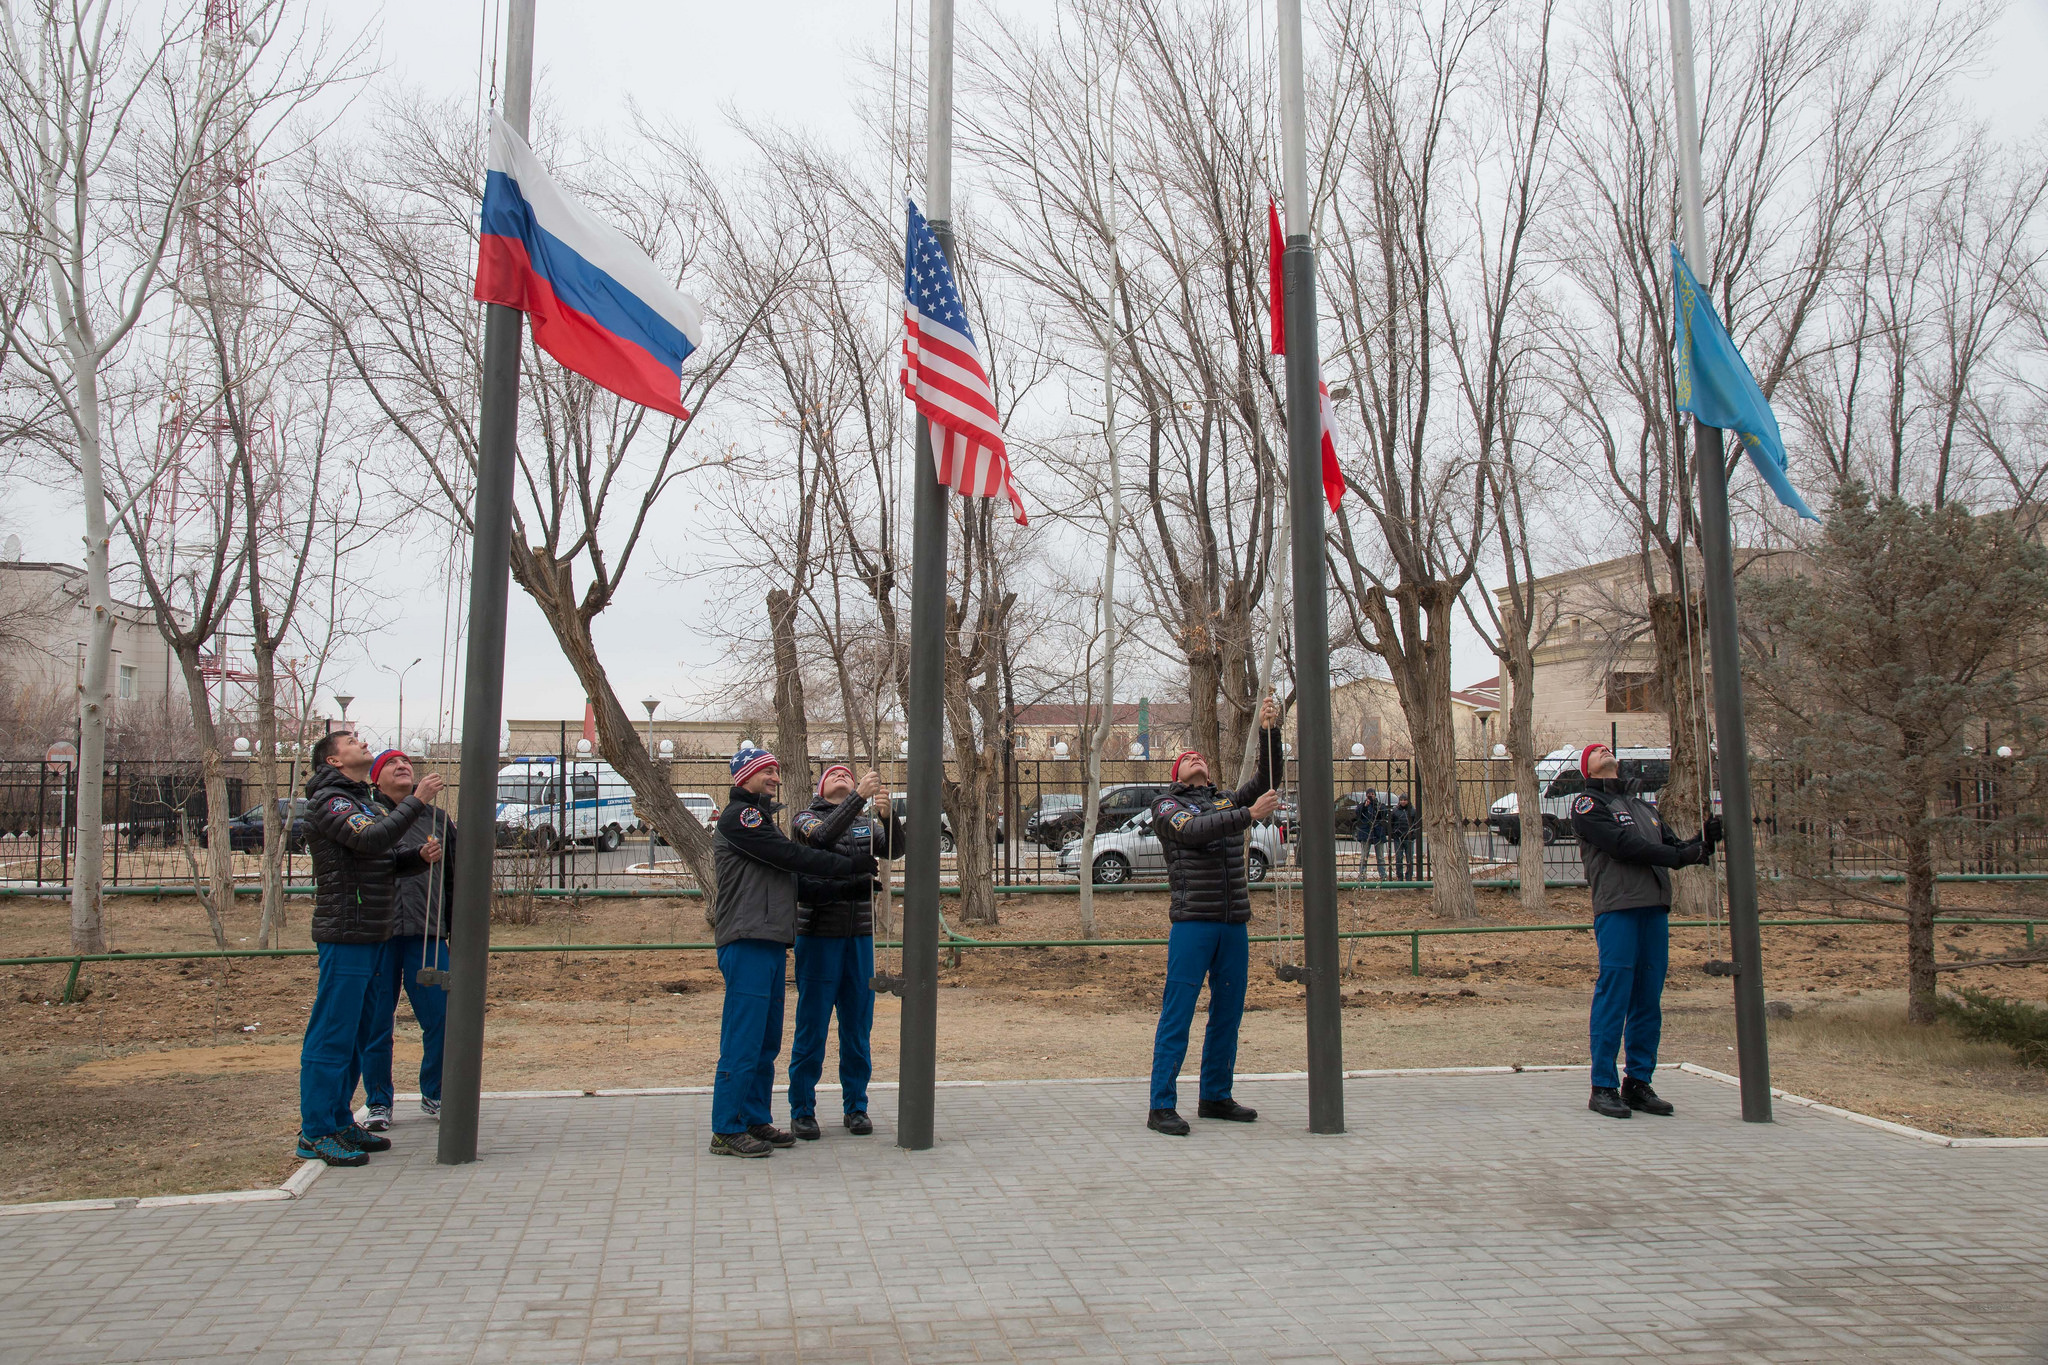 Outside the Cosmonaut Hotel crew quarters in Baikonur, Kazakhstan, the Expedition 58 prime and backup crew members raise the flags of Russia, the United States, Canada and Kazakhstan Nov. 21 in a traditional ceremony. Anne McClain of NASA, Oleg Kononenko of Roscosmos and David Saint-Jacques of the Canadian Space Agency will launch Dec. 3 on the Soyuz MS-11 spacecraft from the Baikonur Cosmodrome in Kazakhstan for a six-and-a-half month mission on the International Space Station